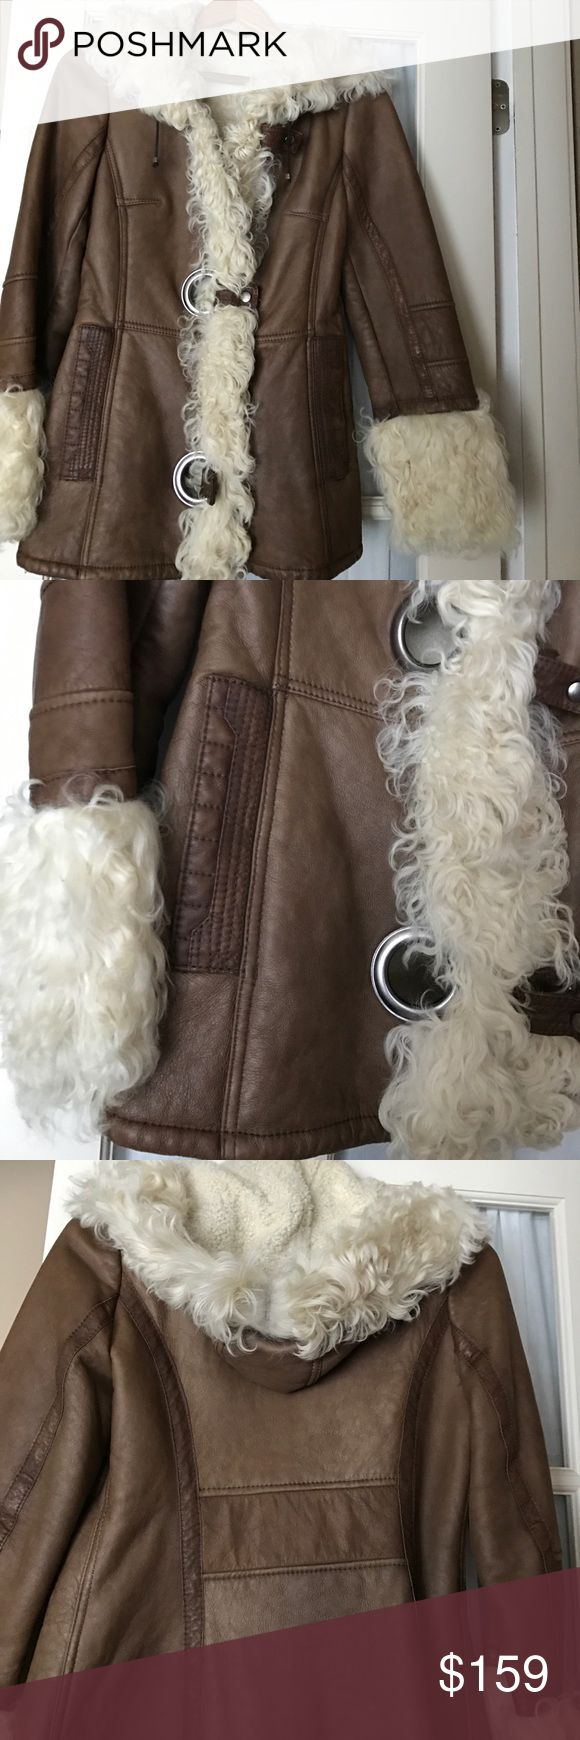 Women's leather jacket with fur Camel color leather jacket fully lined with hood and trimmed in fur. Size medium runs small. Wore once Jackets & Coats